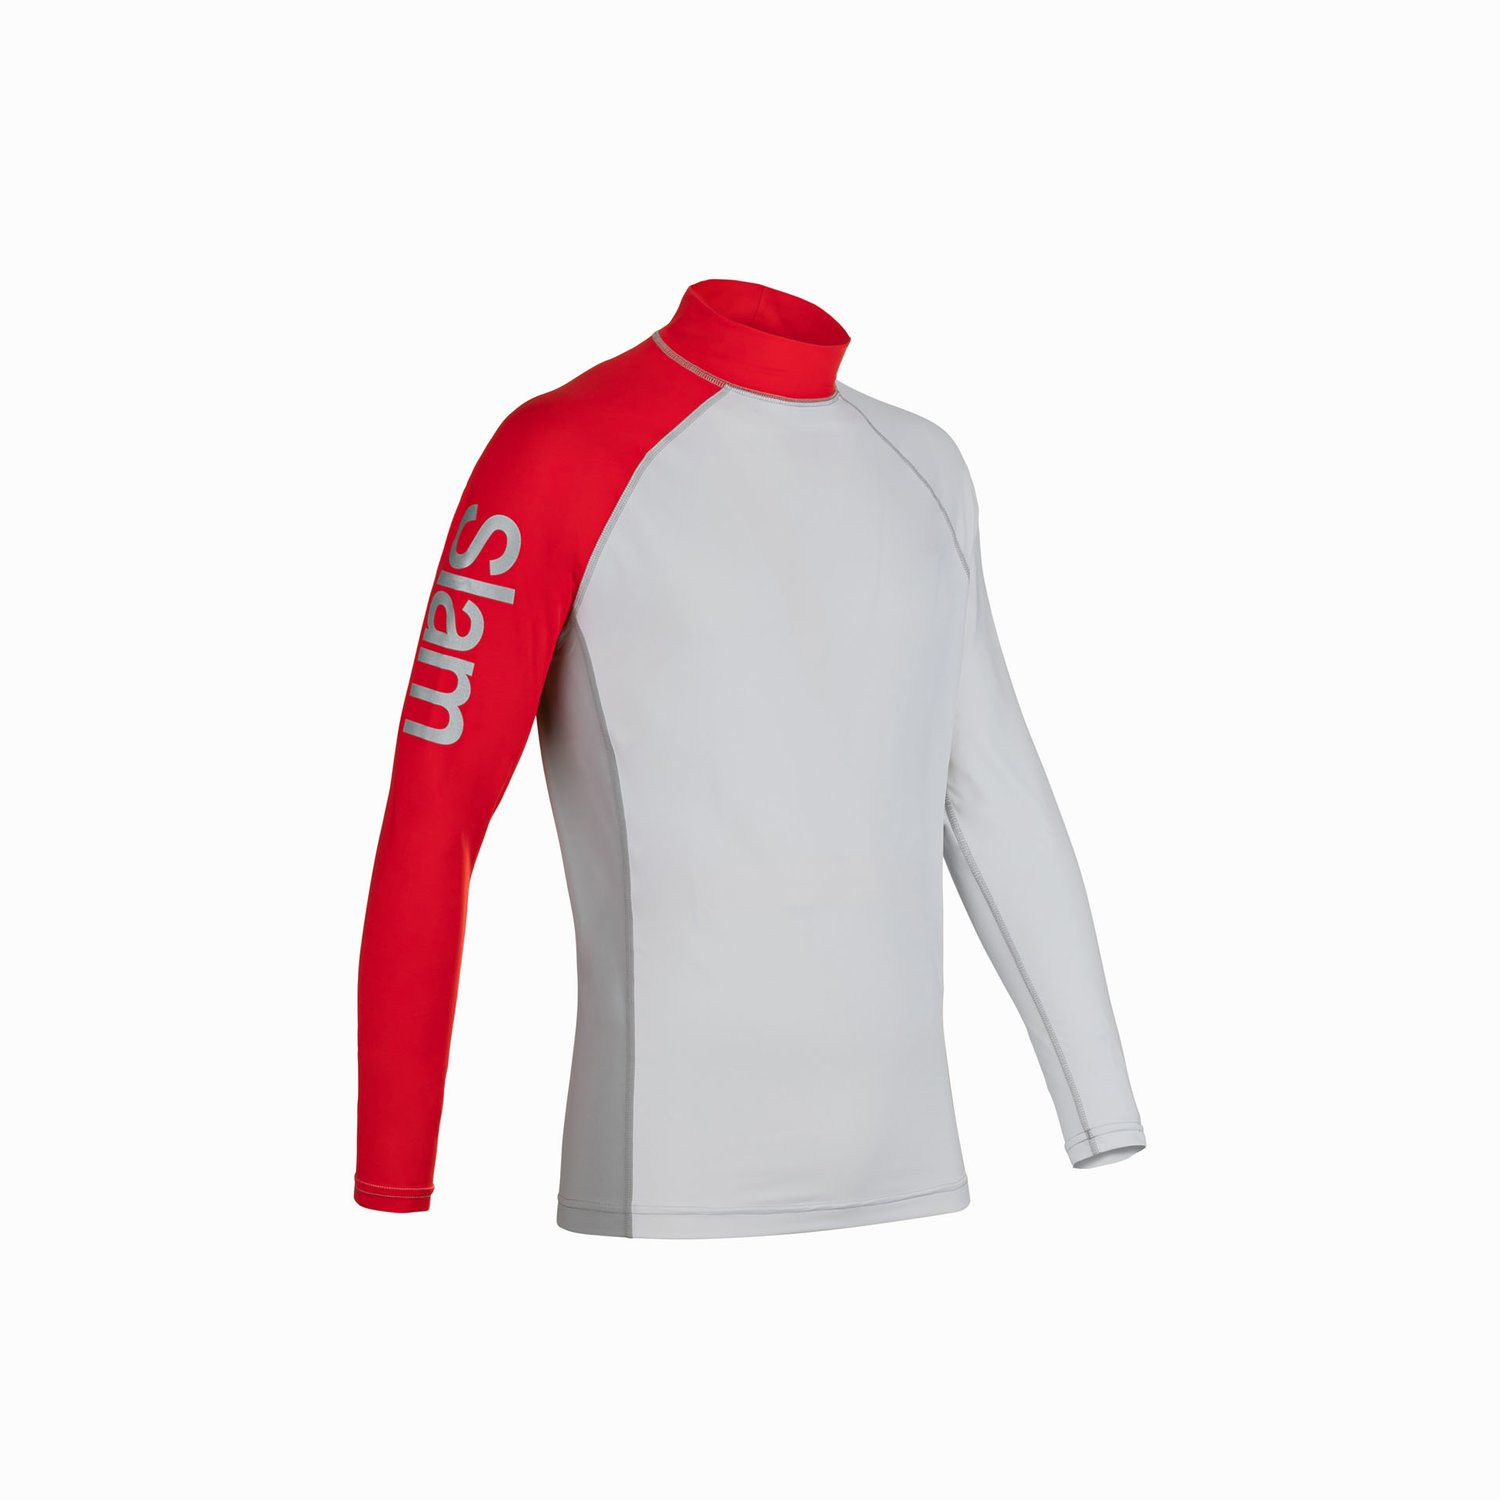 Frigate Top - White / Grey / Slam Red